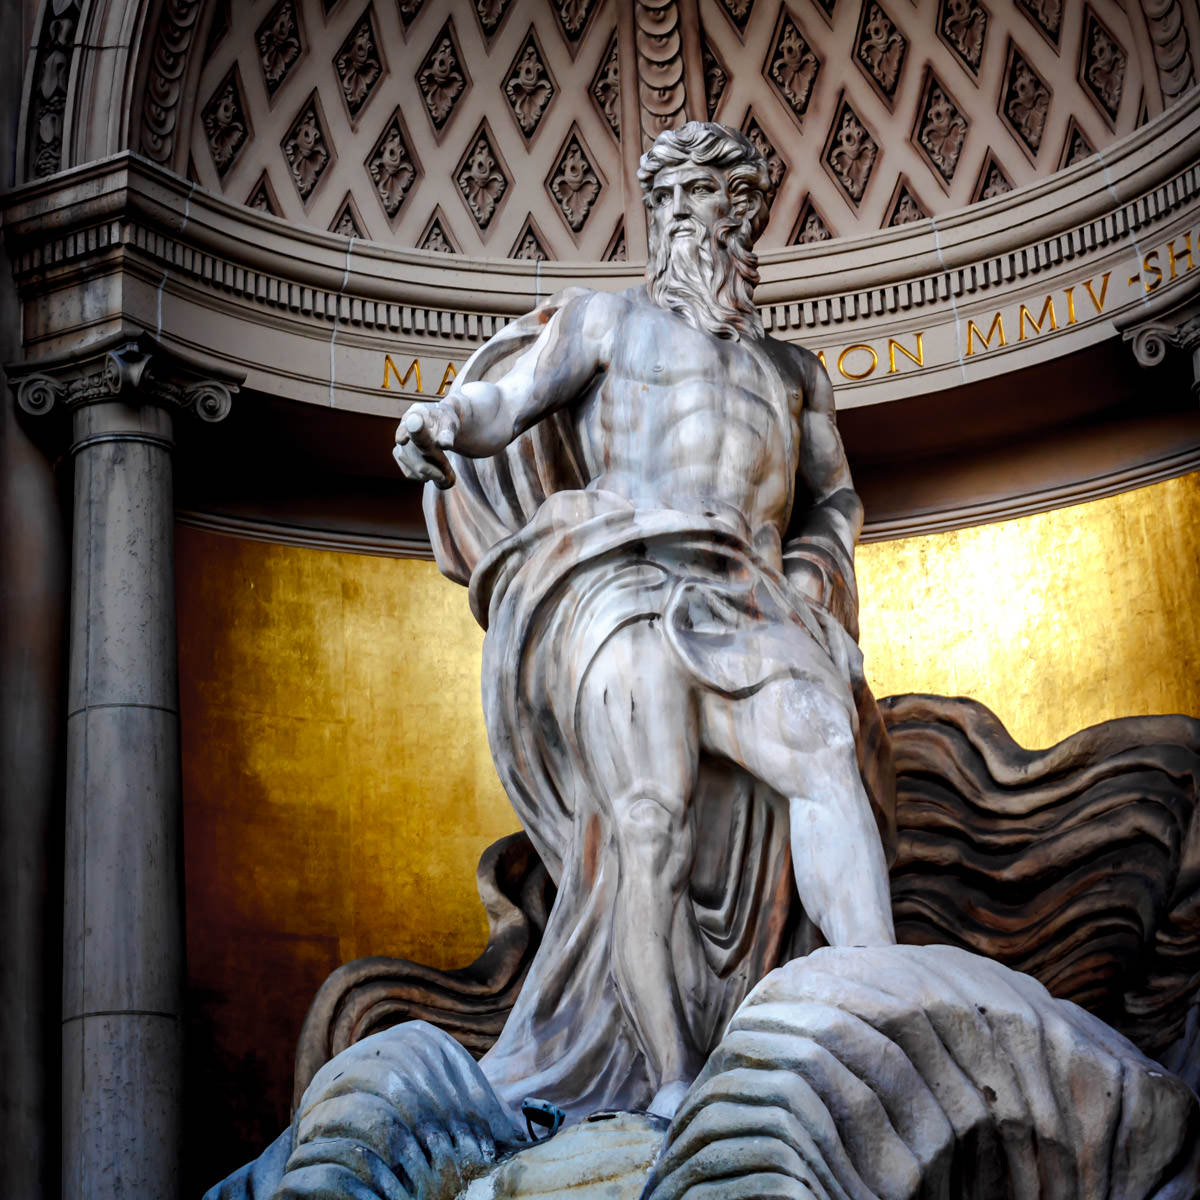 A statue of the Roman god of the sea, Neptune, known as Poseidon to the Greeks, stands in a replica of Rome's Trevi Fountain outside of the Forum Shops at Caesars Palace, Las Vegas.